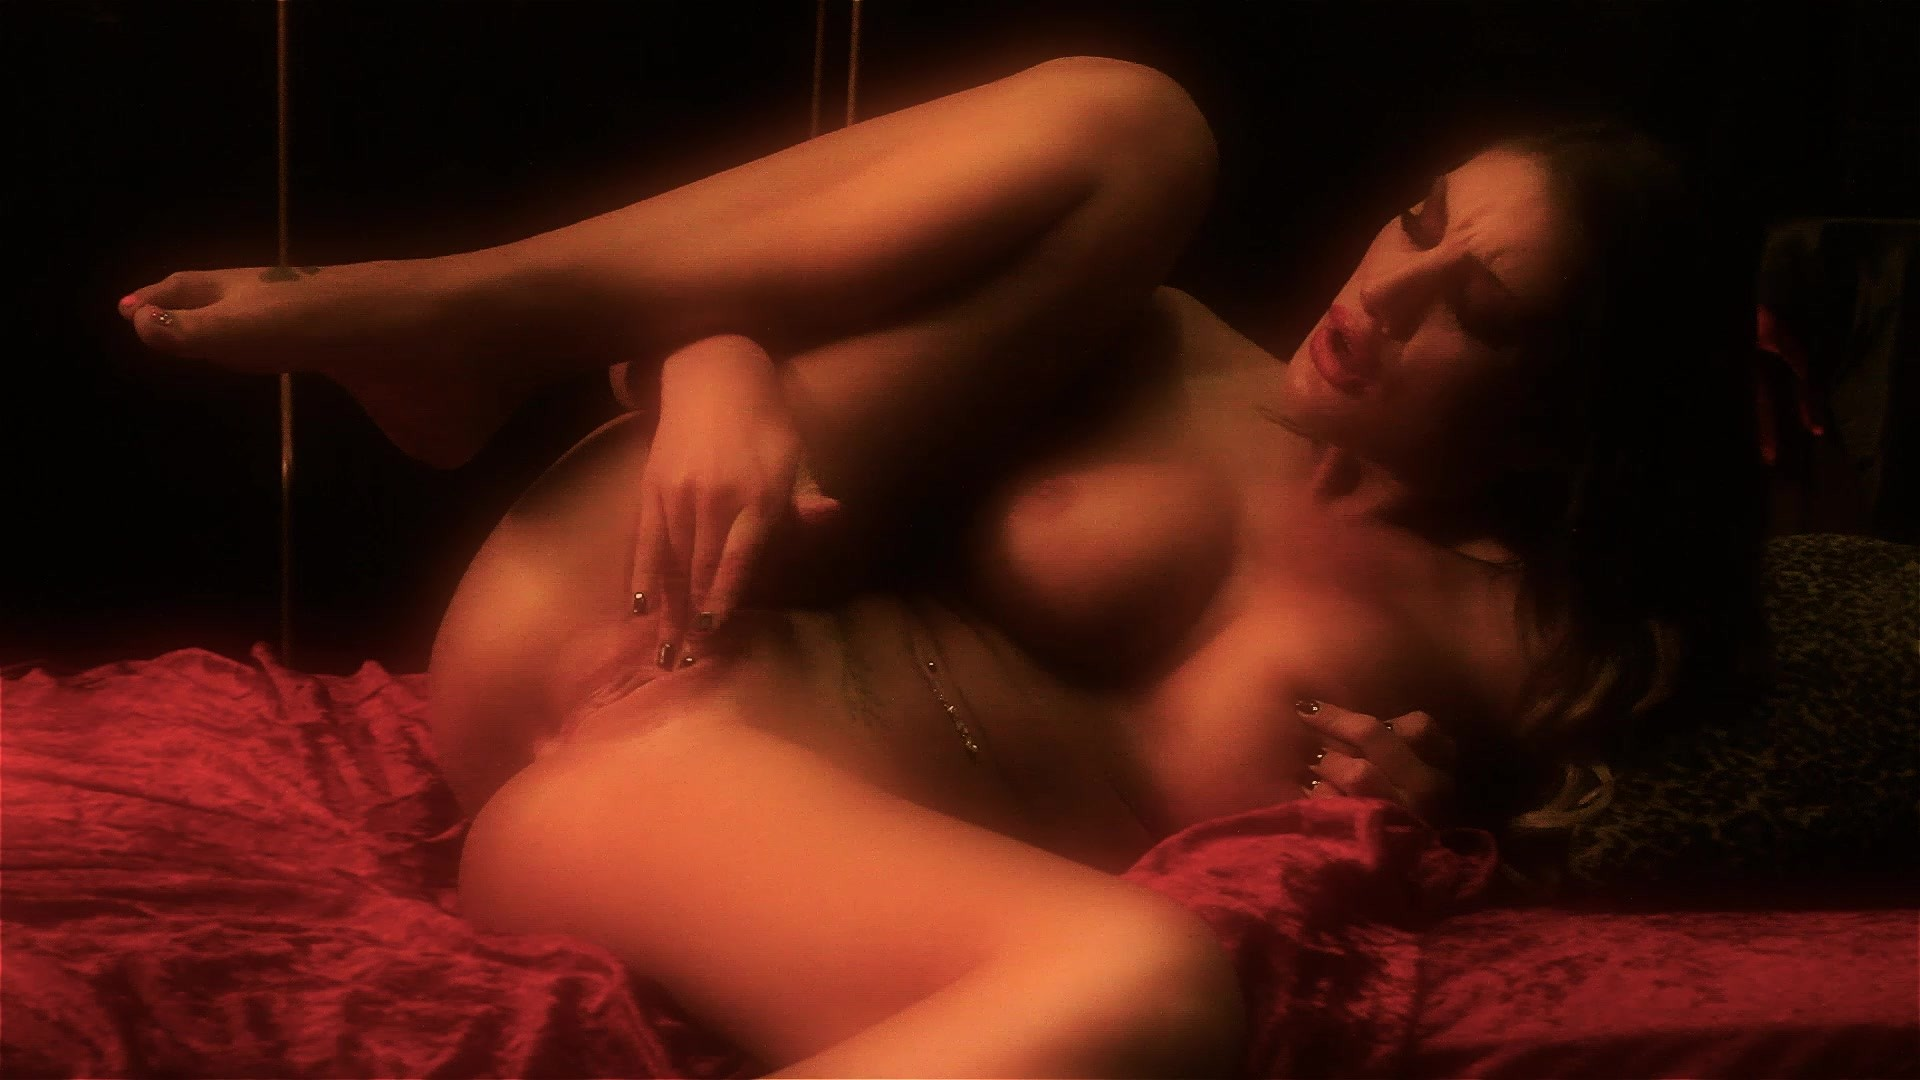 Naked Busty Brunette August Ames Touches Herself Starring: August Ames